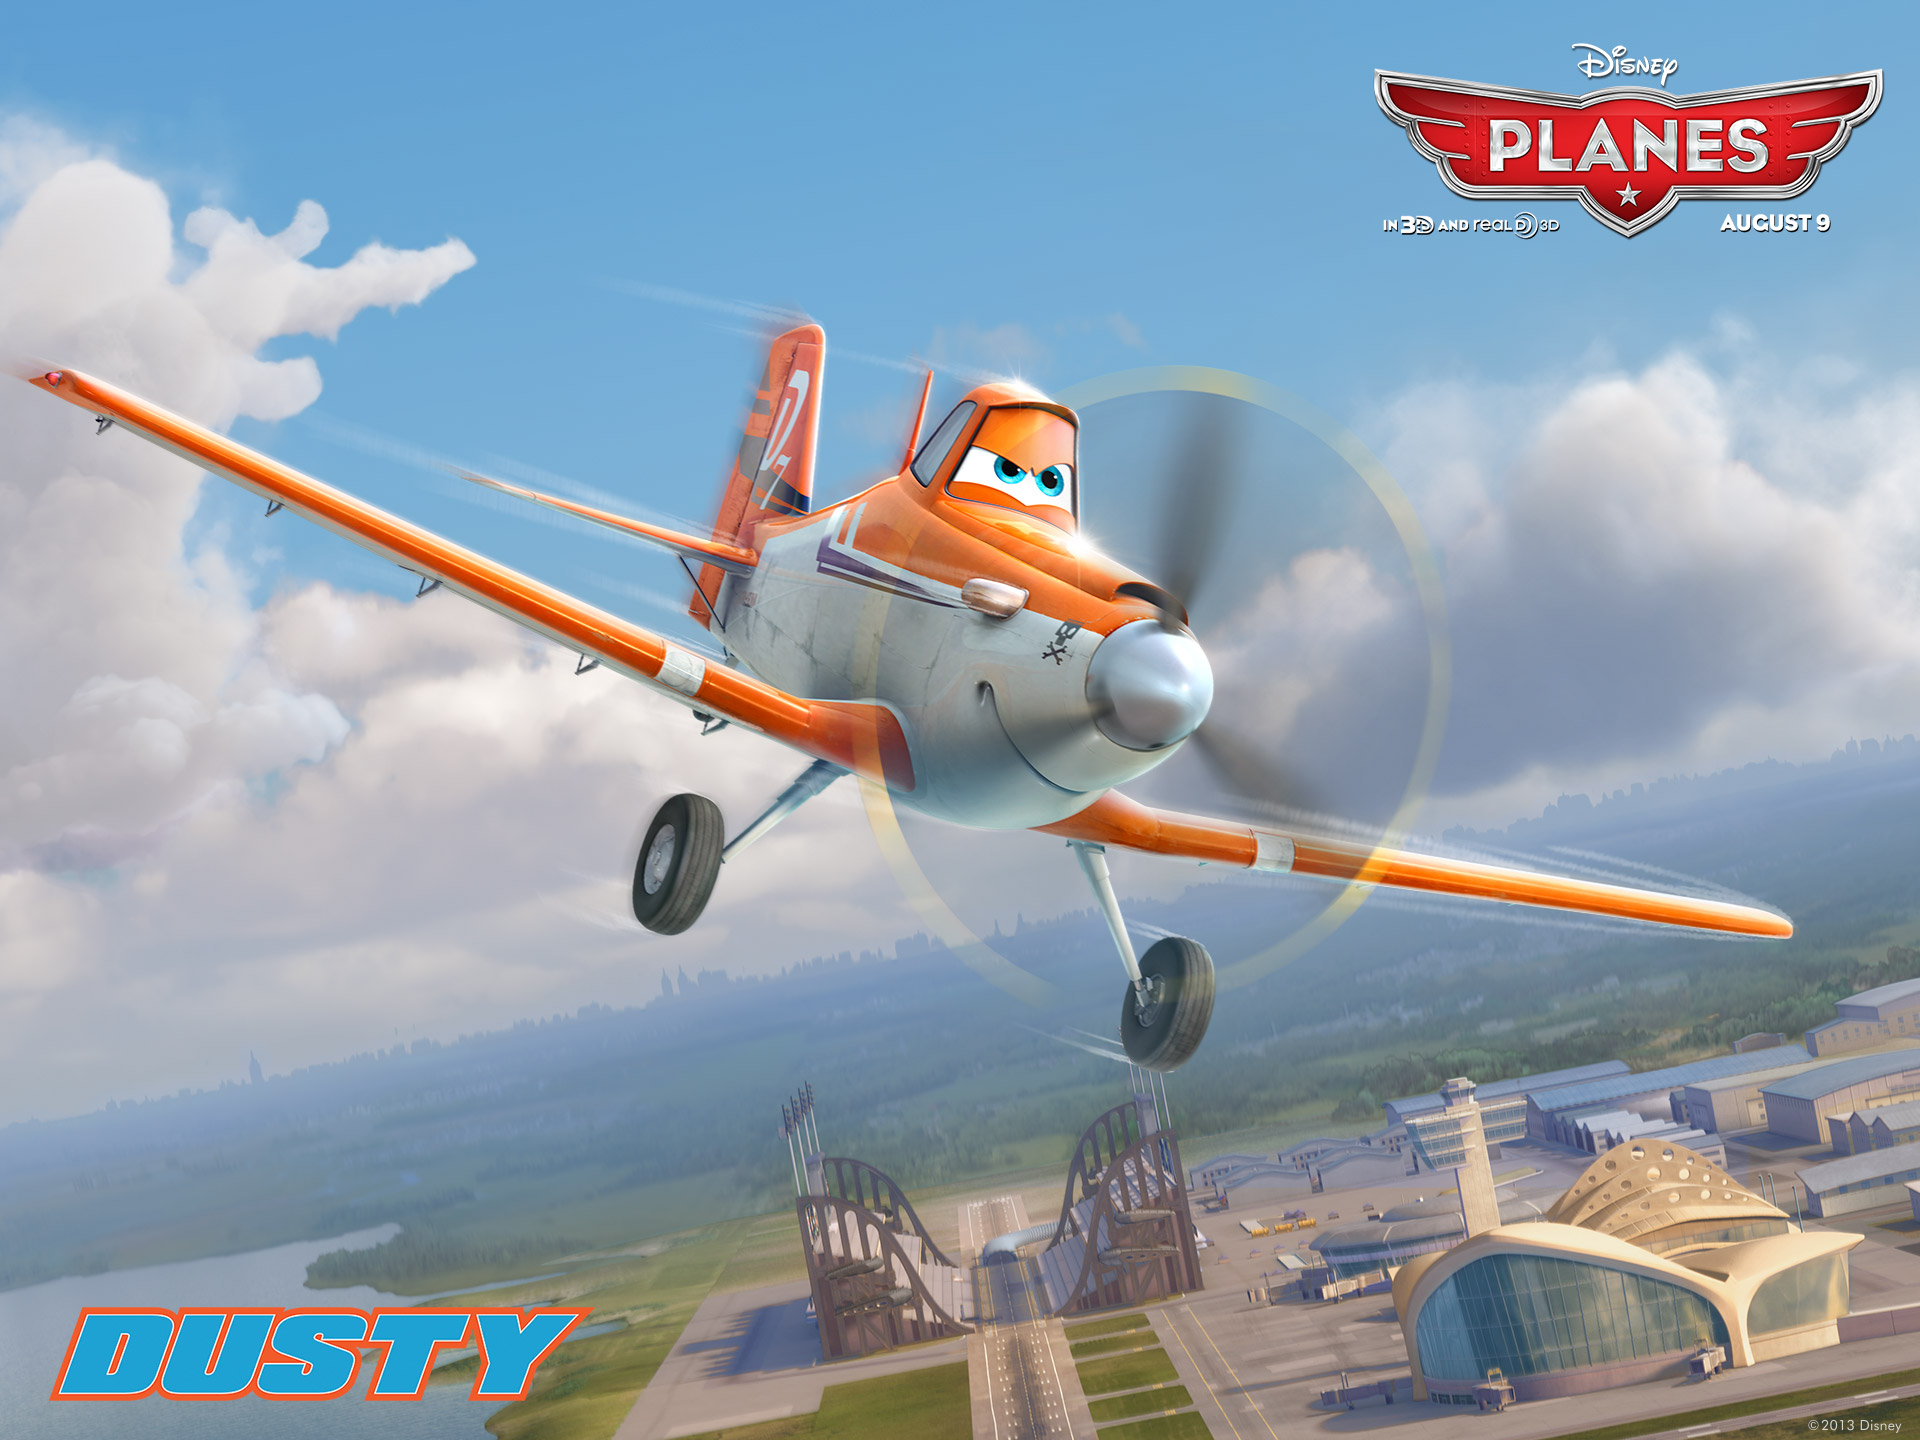 Disney Planes dusty 1920 x 1440